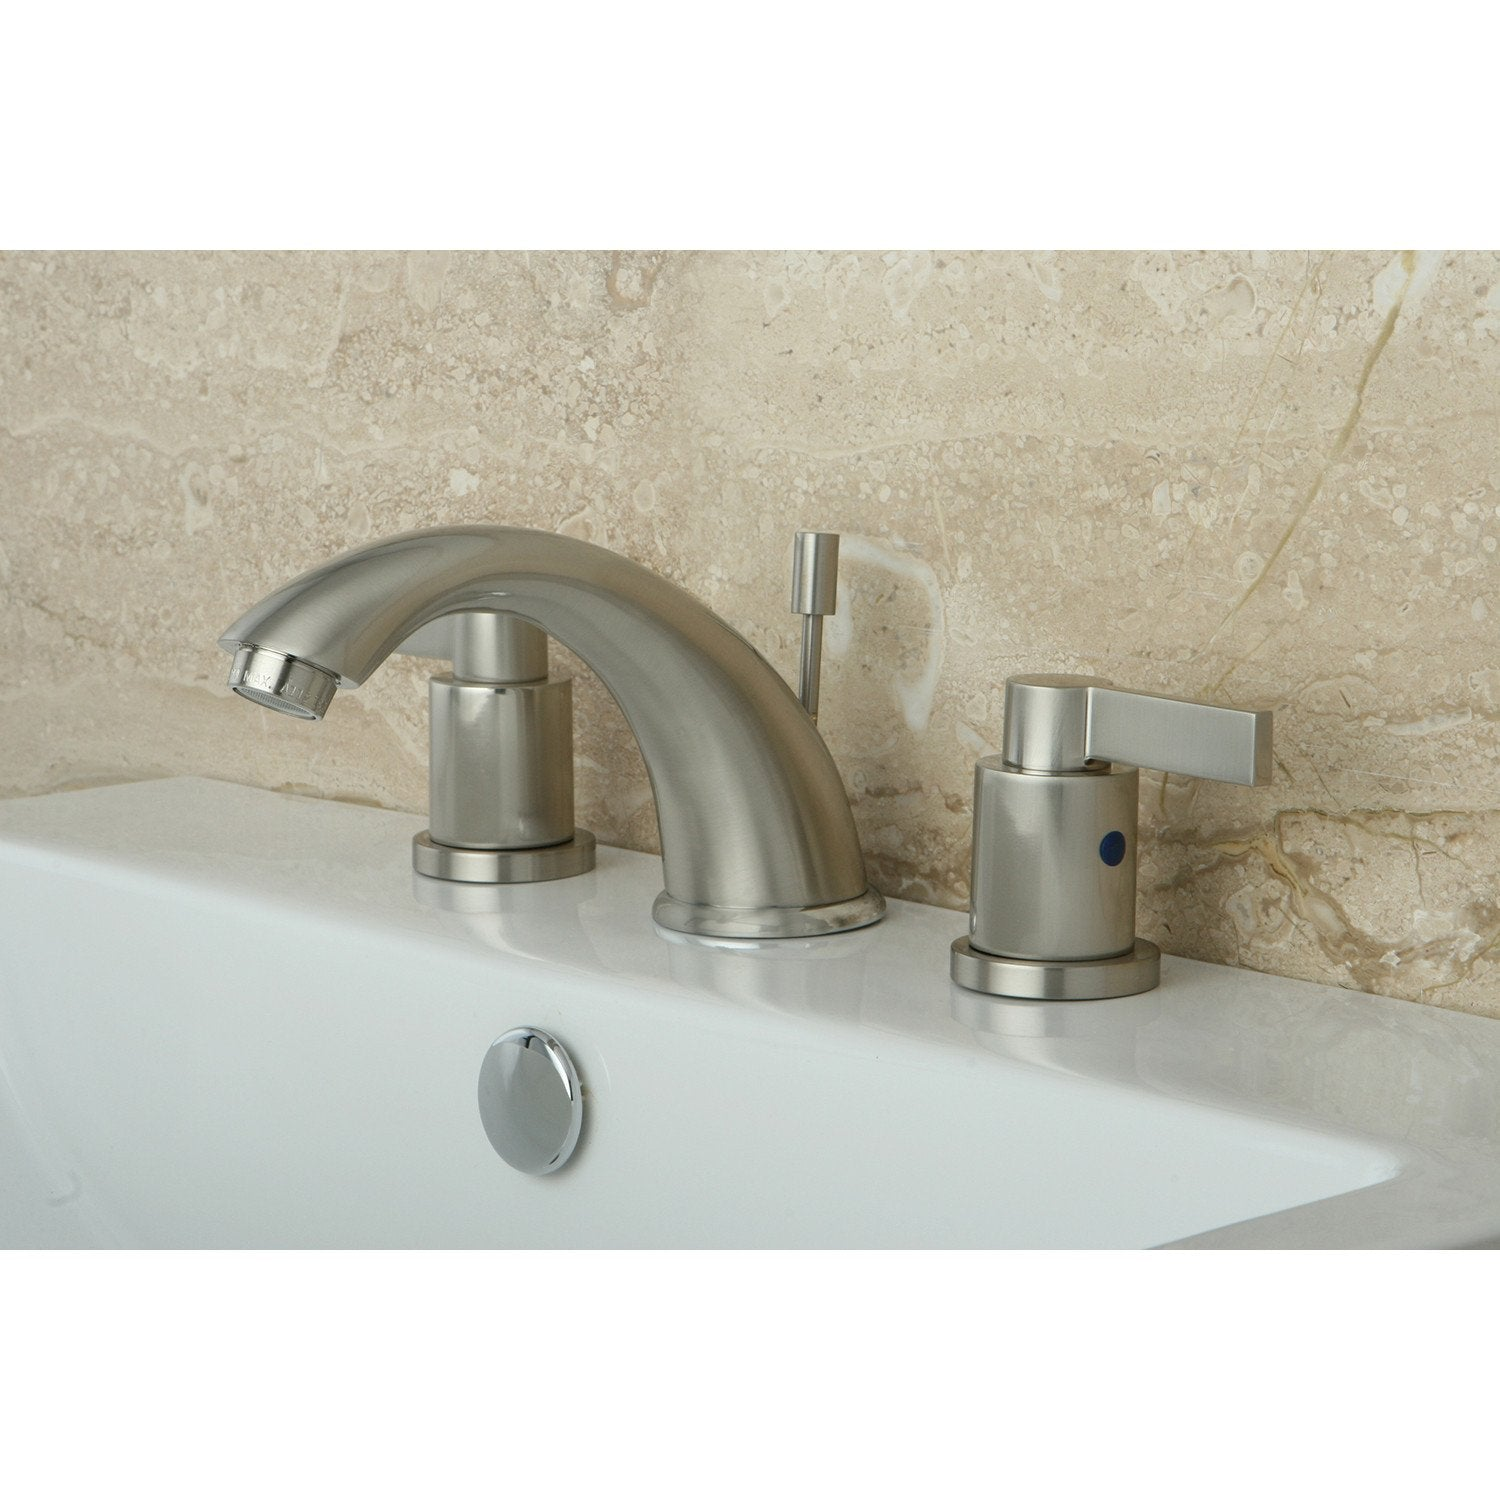 Kingston Satin Nickel NuvoFusion C Spout Widespread bathroom Faucet KB8968NDL